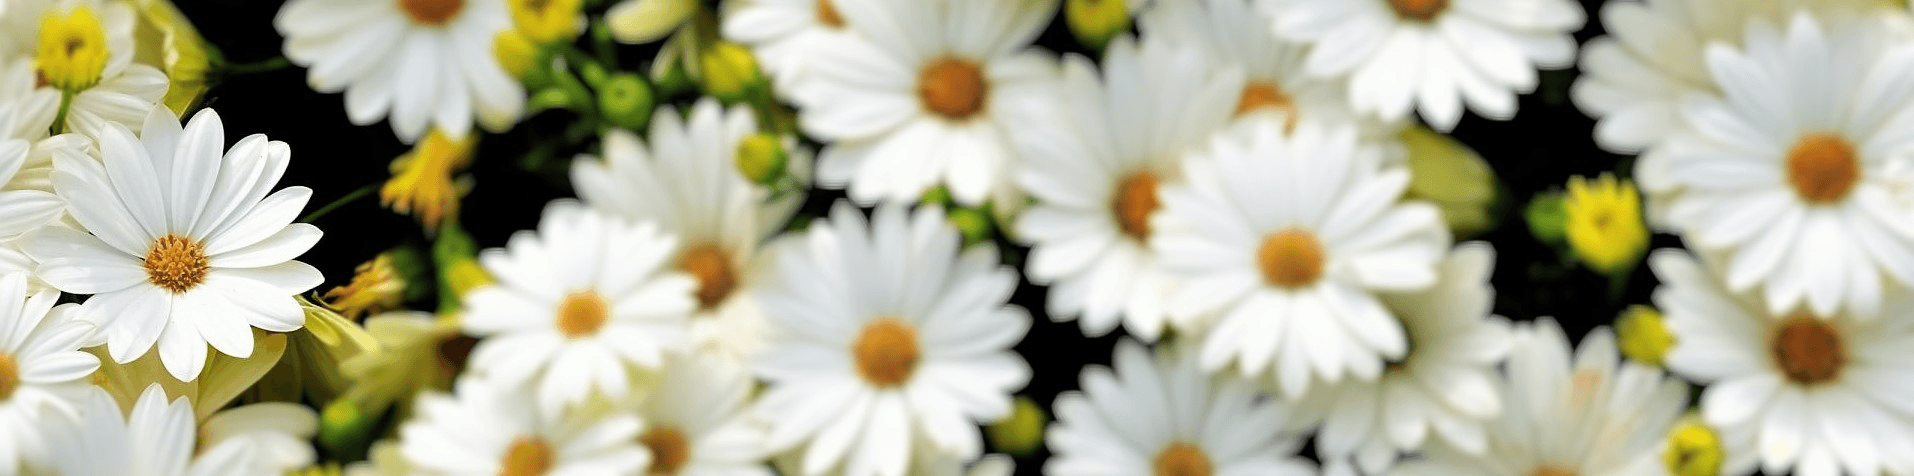 banner picture - close-up of daisies - one flower in focus